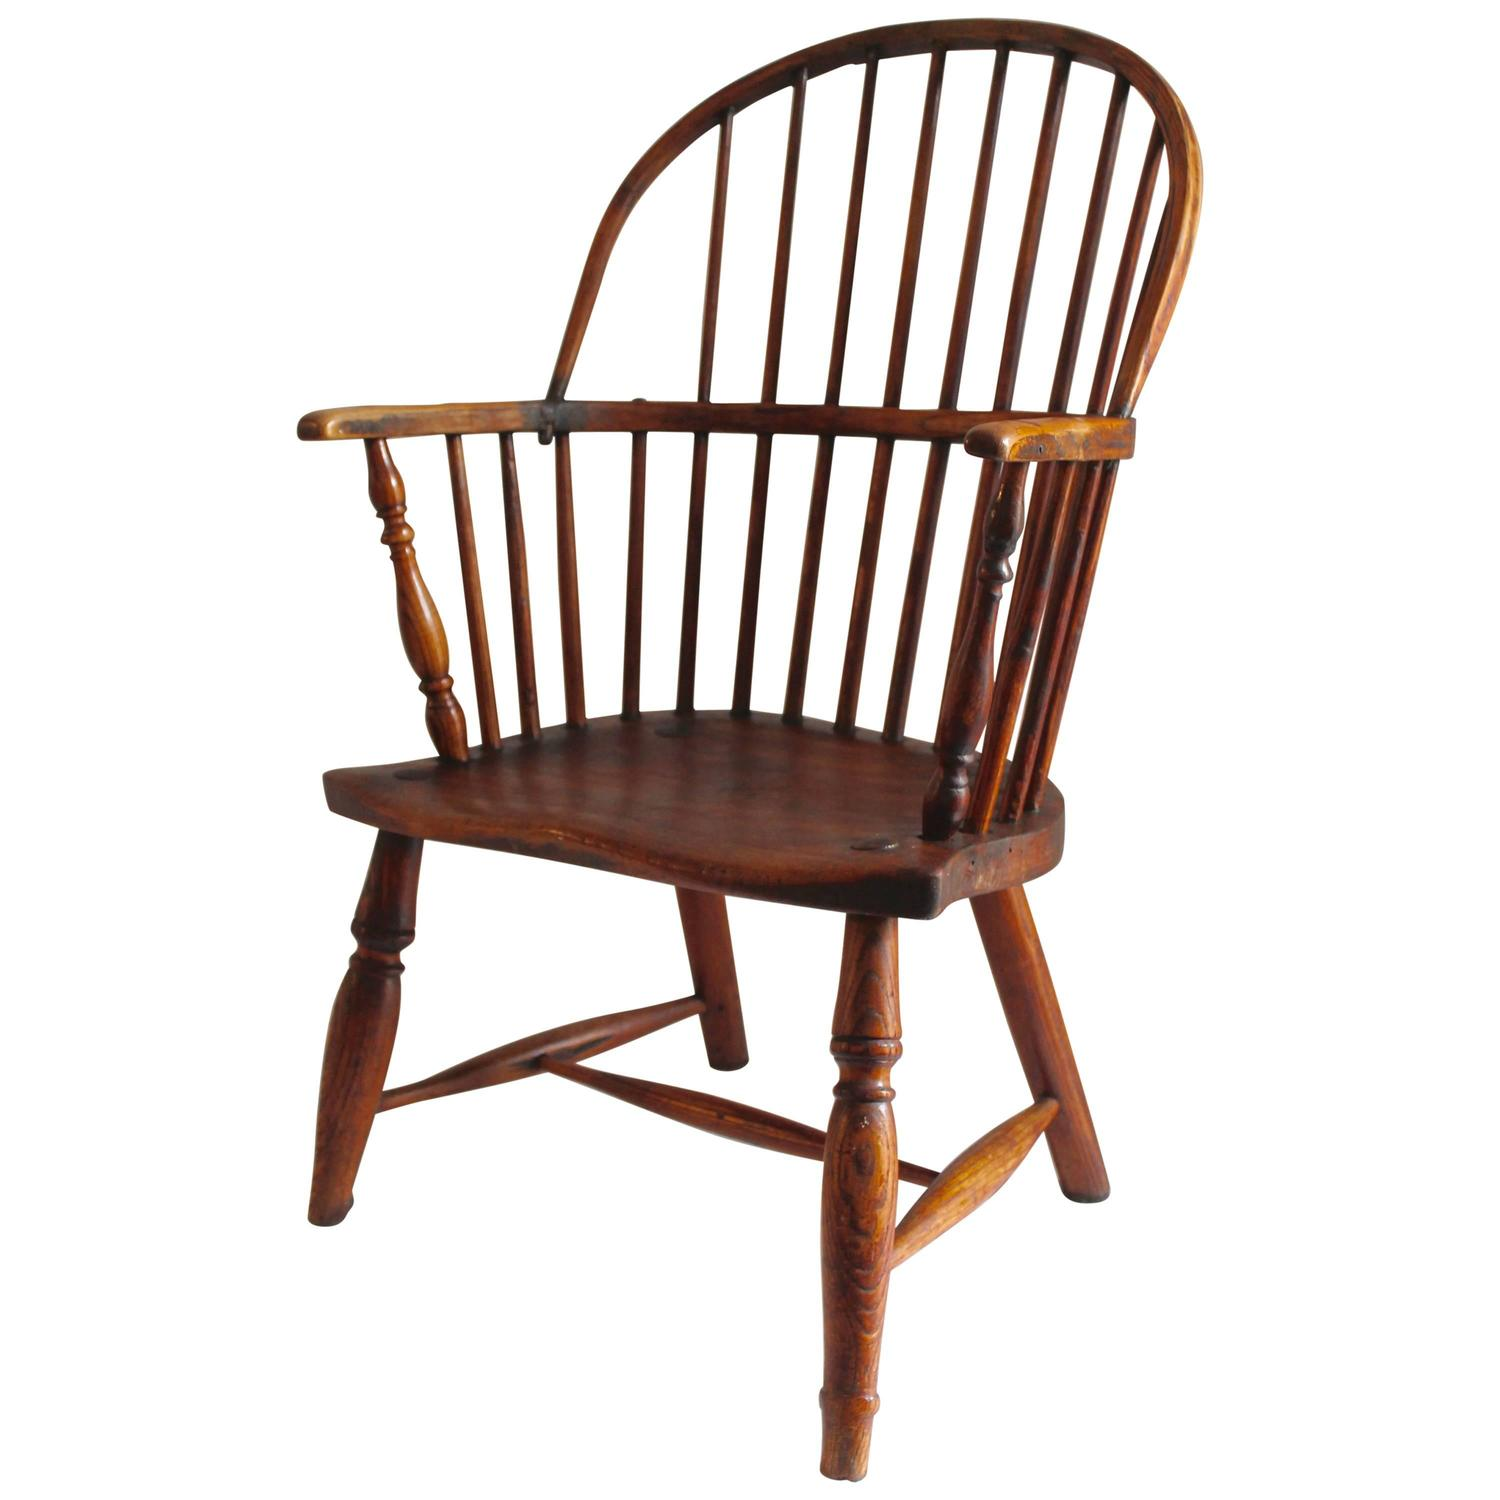 Antique and Vintage Windsor Chairs 140 For Sale at 1stdibs